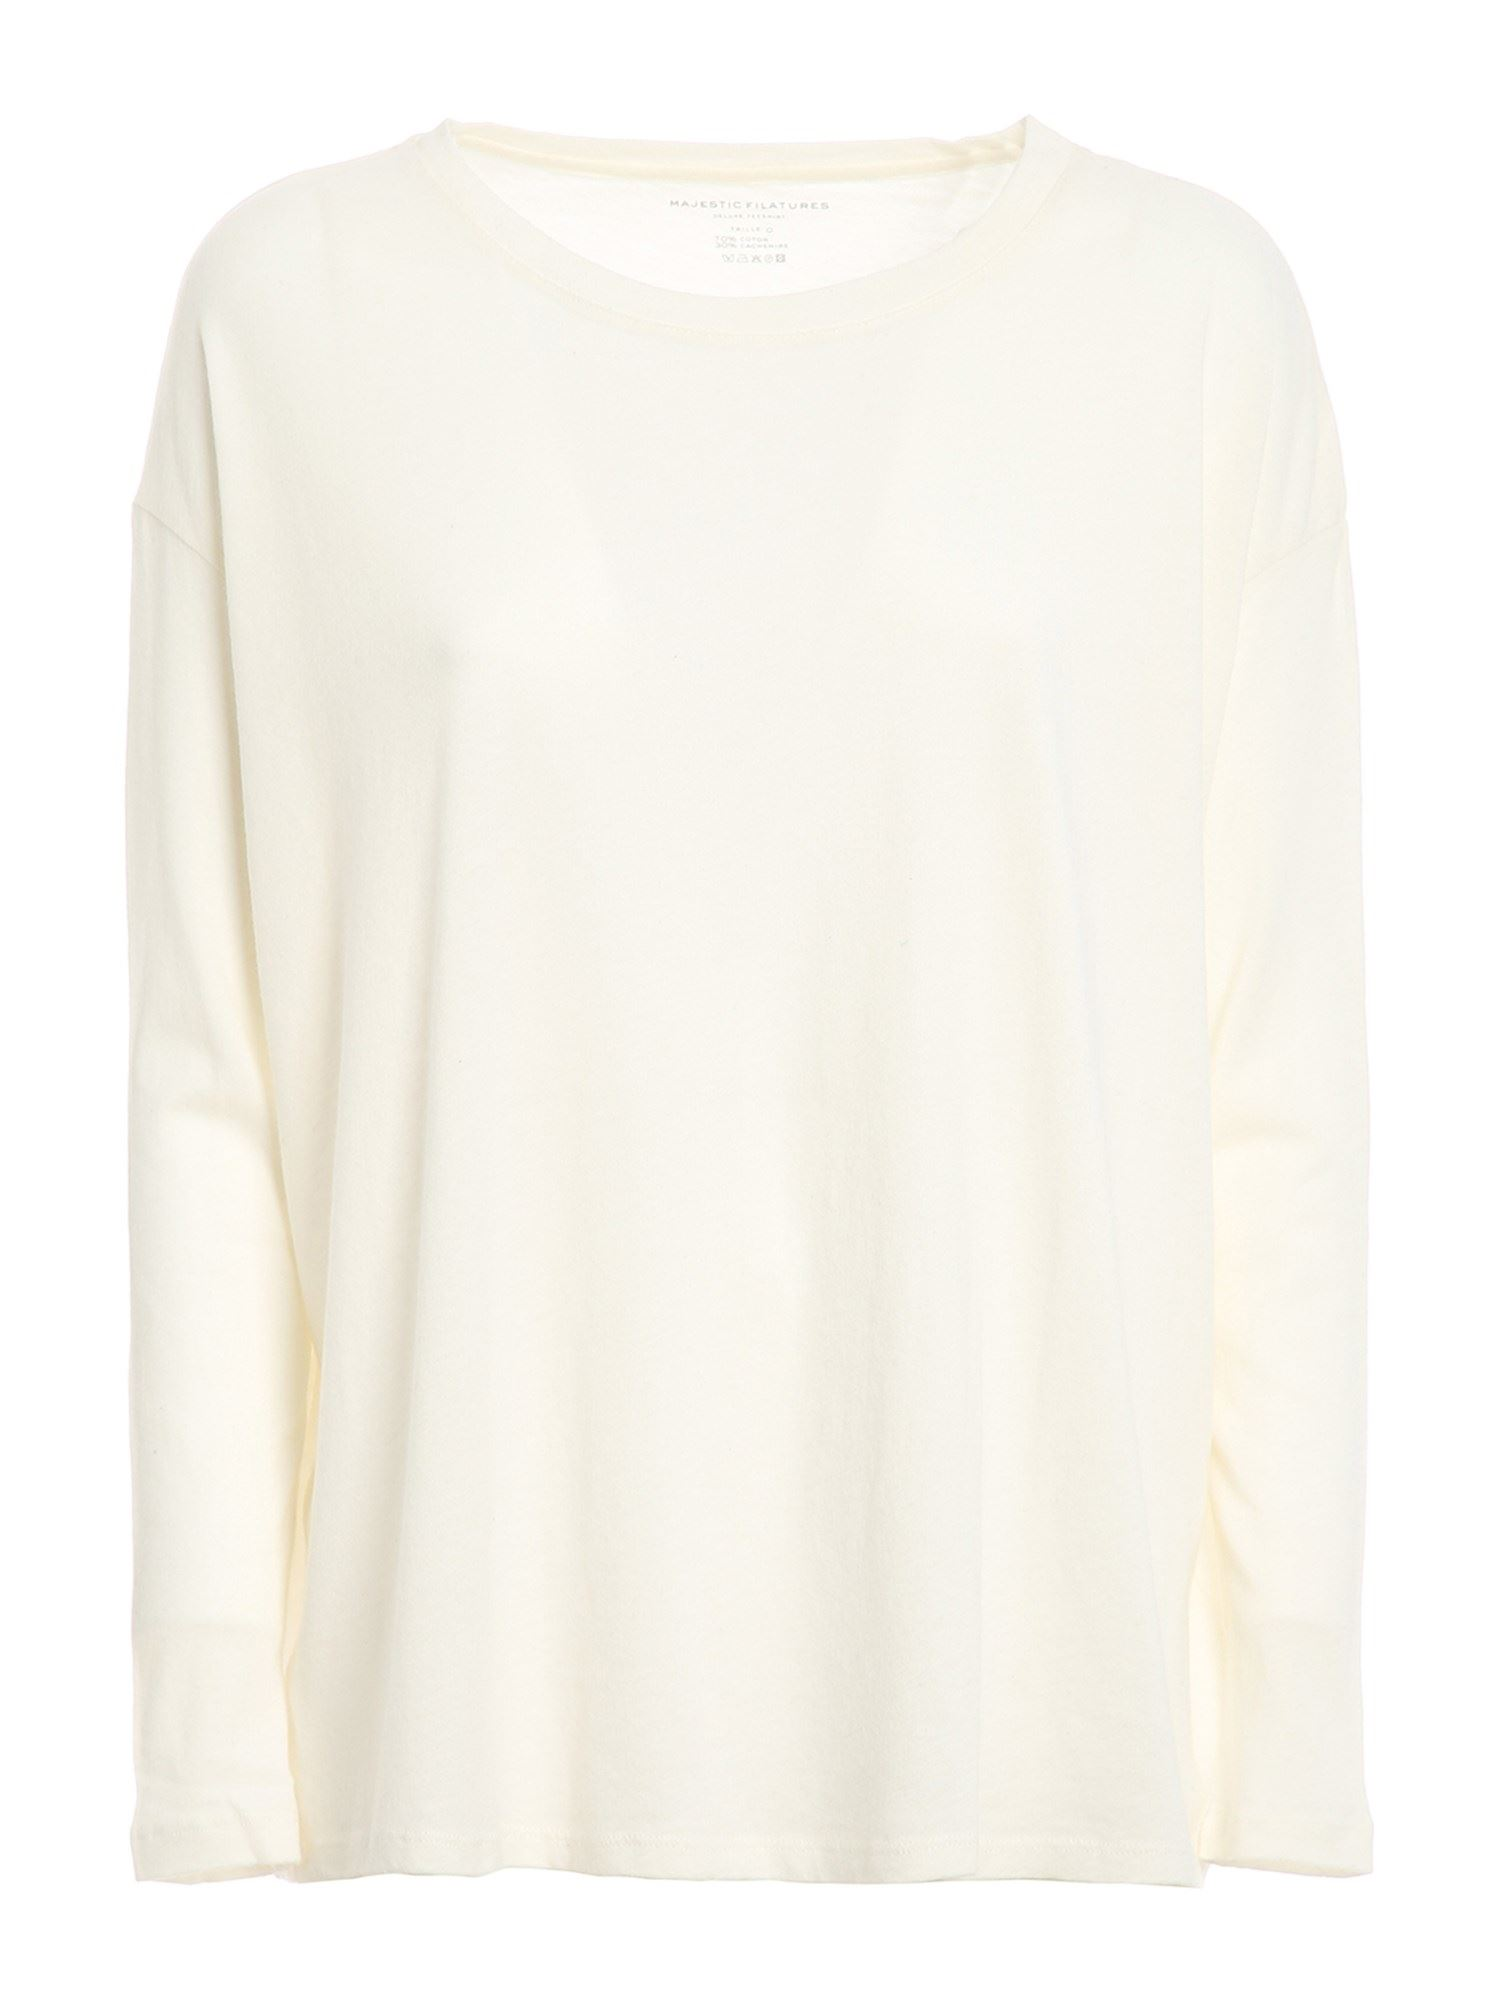 MAJESTIC MAJESTIC FILATURES CASHMERE BLEND T-SHIRT IN WHITE